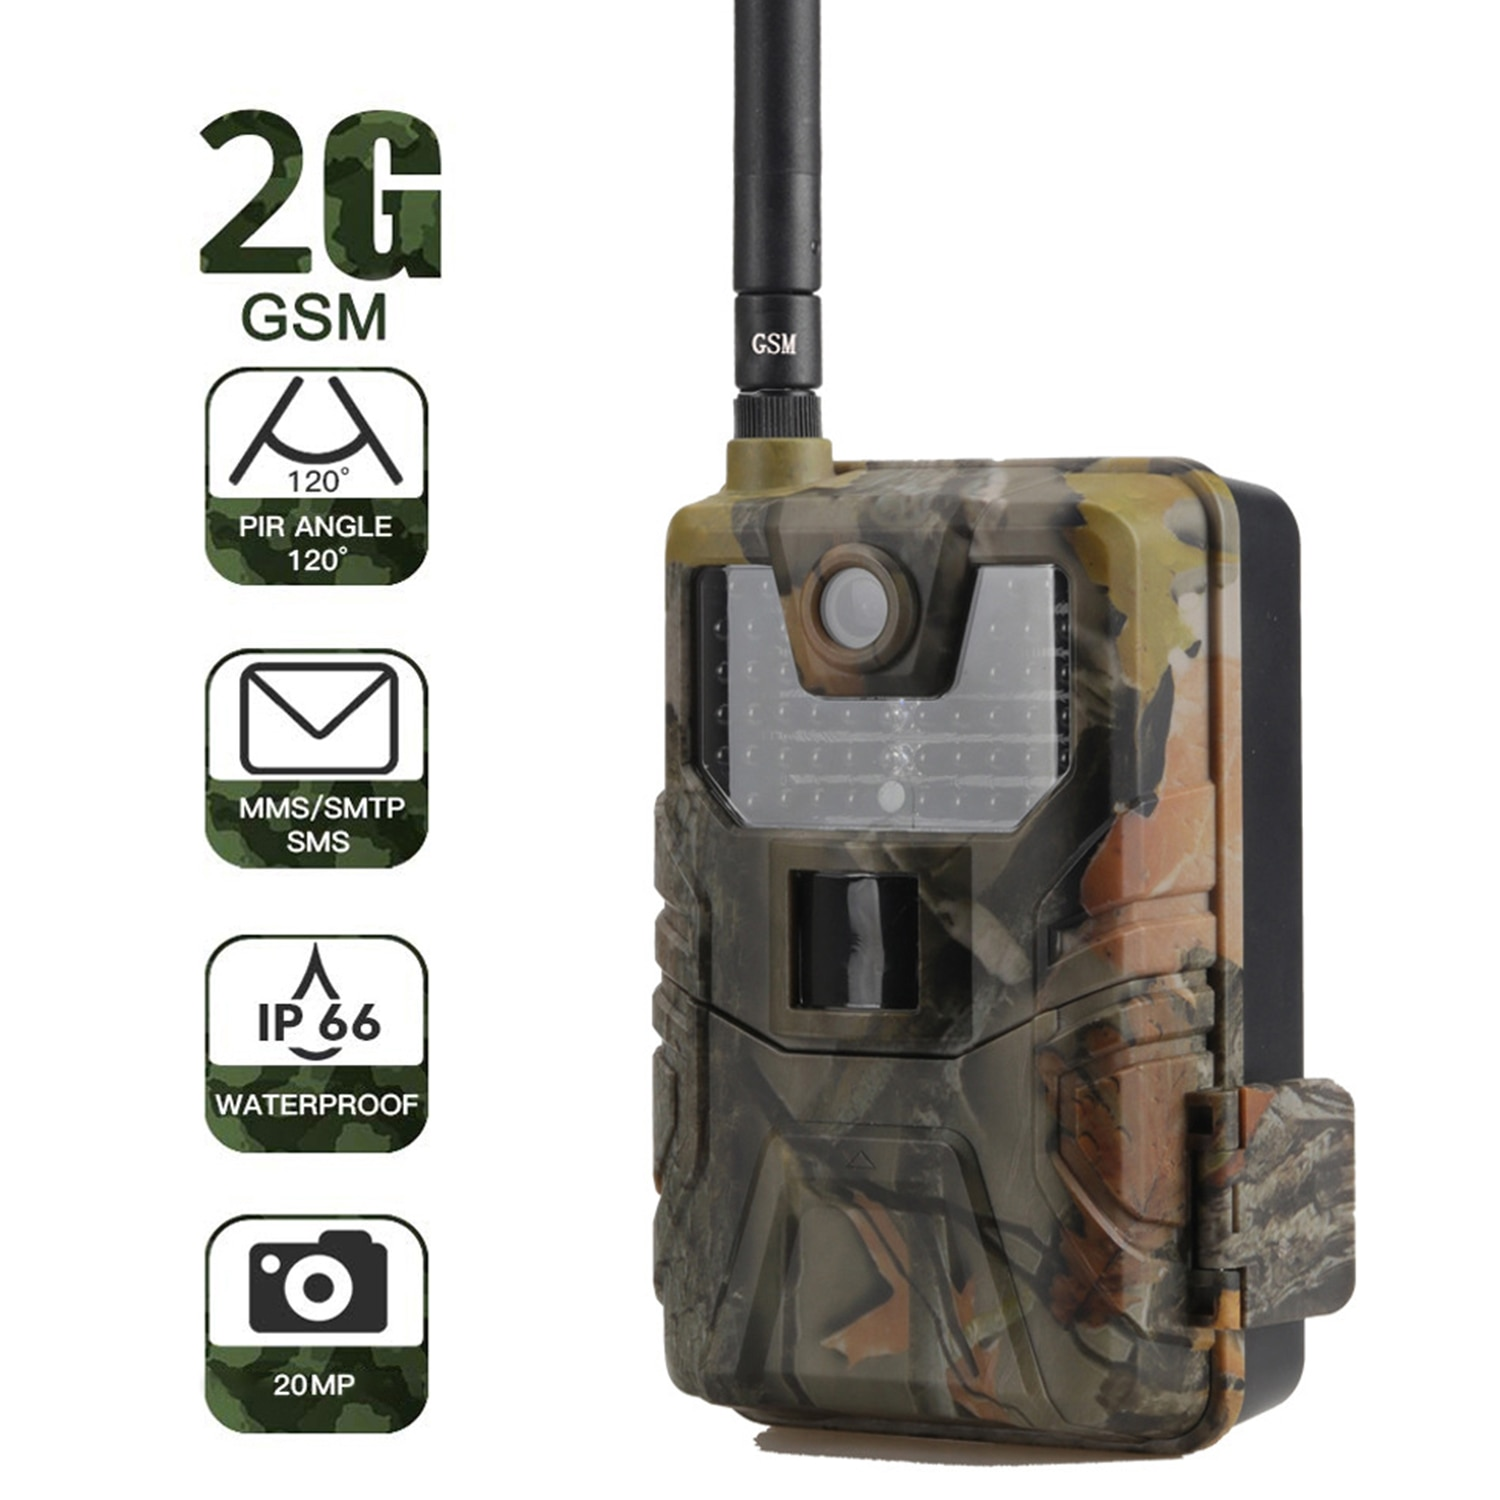 HC900M Hunting Camera 20MP 1080P 940nm Wild Camera Night Vision Photo Traps 2G SMS MMS SMTP Cellular Email Trail Camera Scout недорого